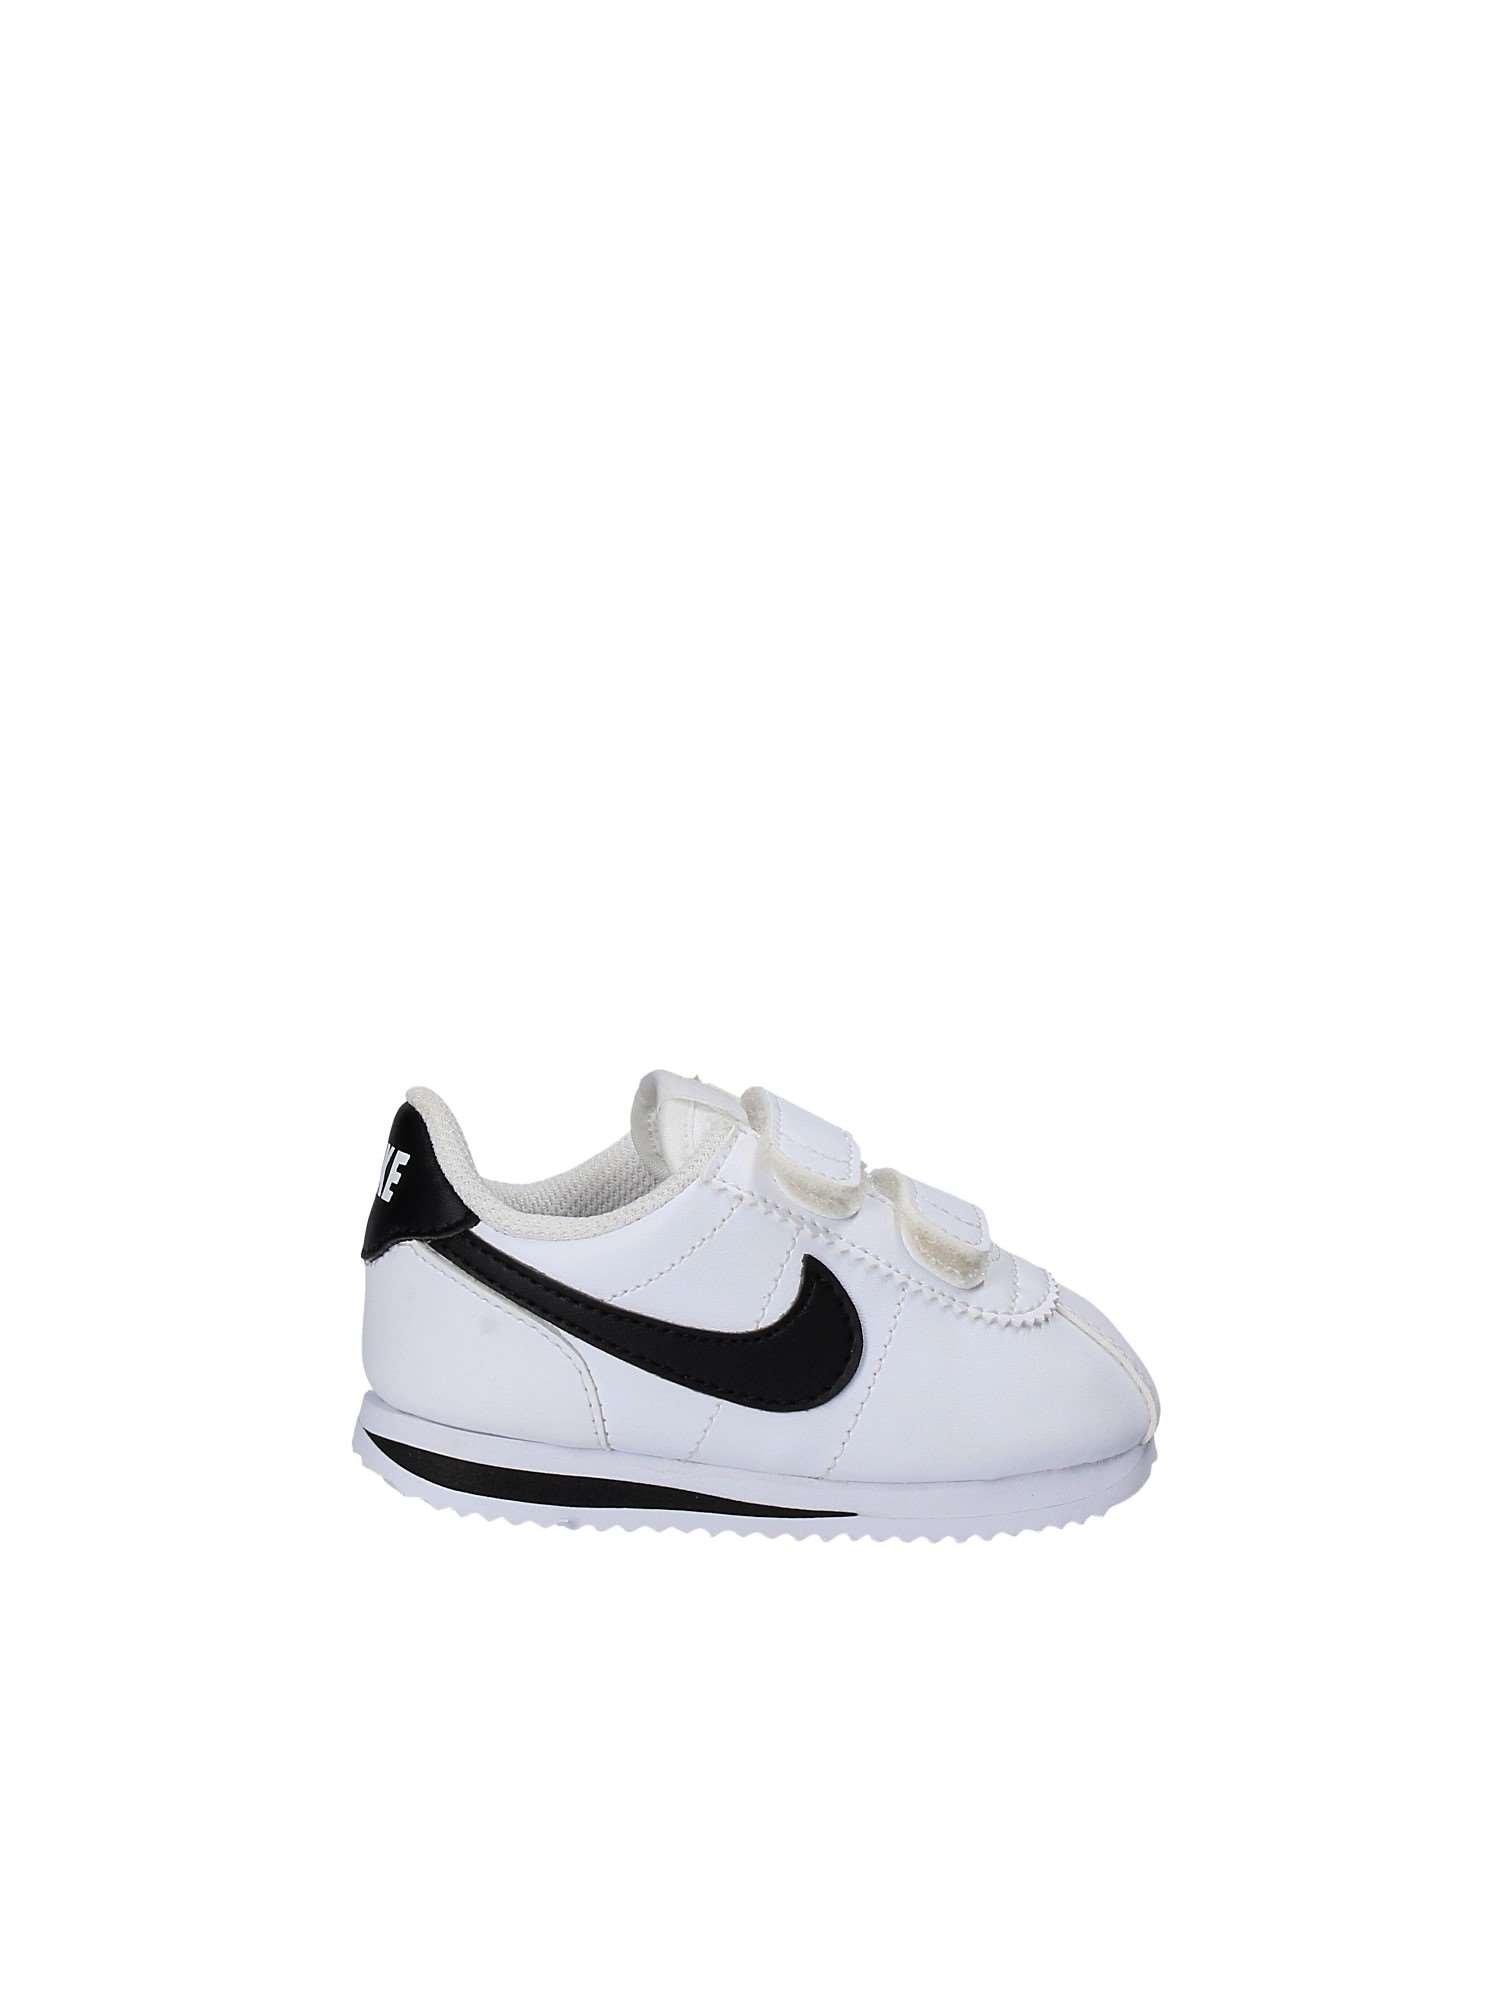 51a5f1c2a Galleon - NIKE Cortez Basic SL Toddler's Shoes White/Black 904769-102 (5 M  US)